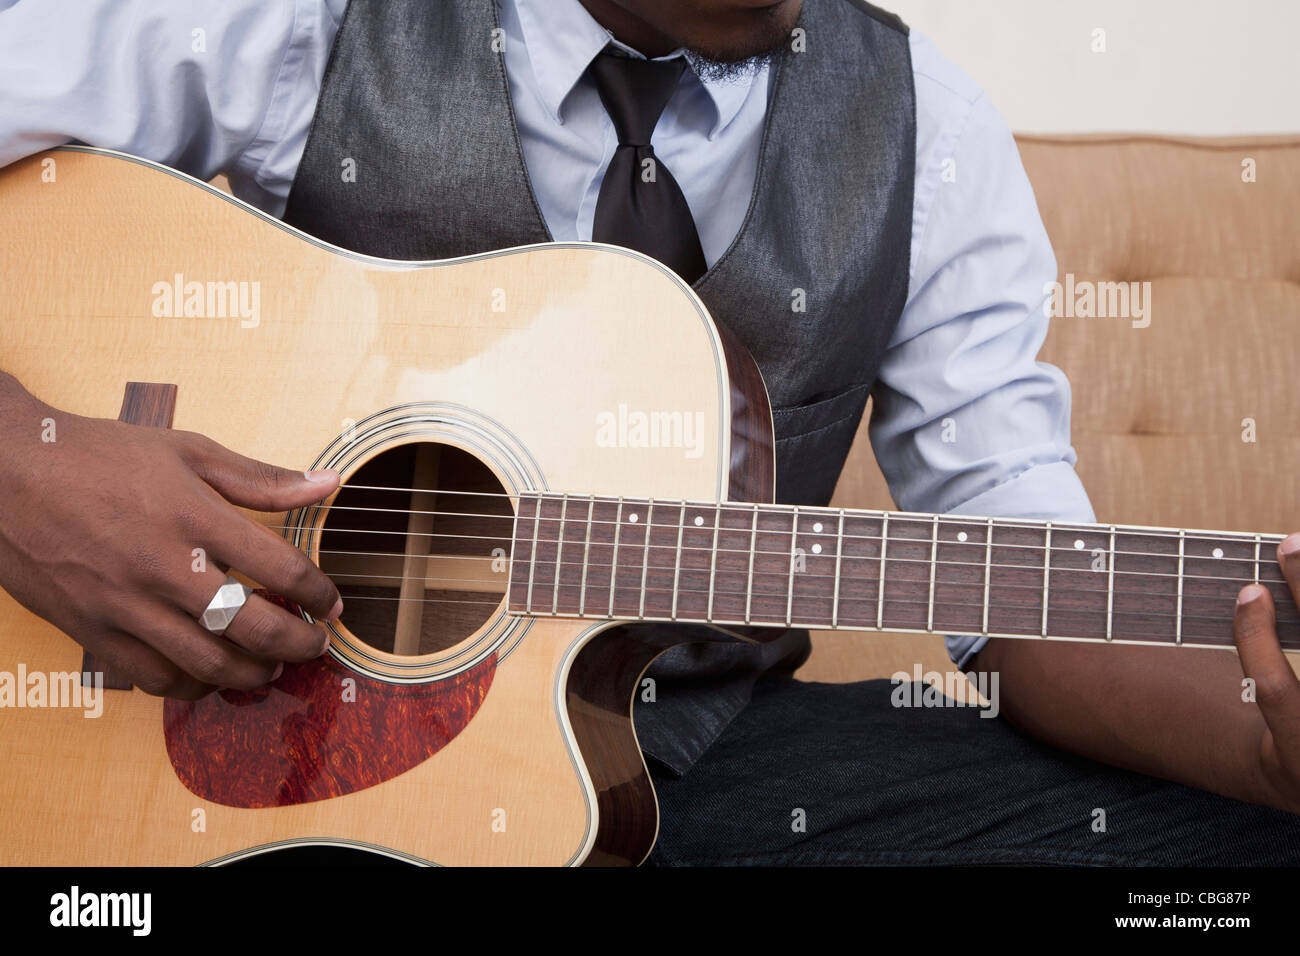 A young man playing an acoustic guitar, focus on midsection - Stock Photo